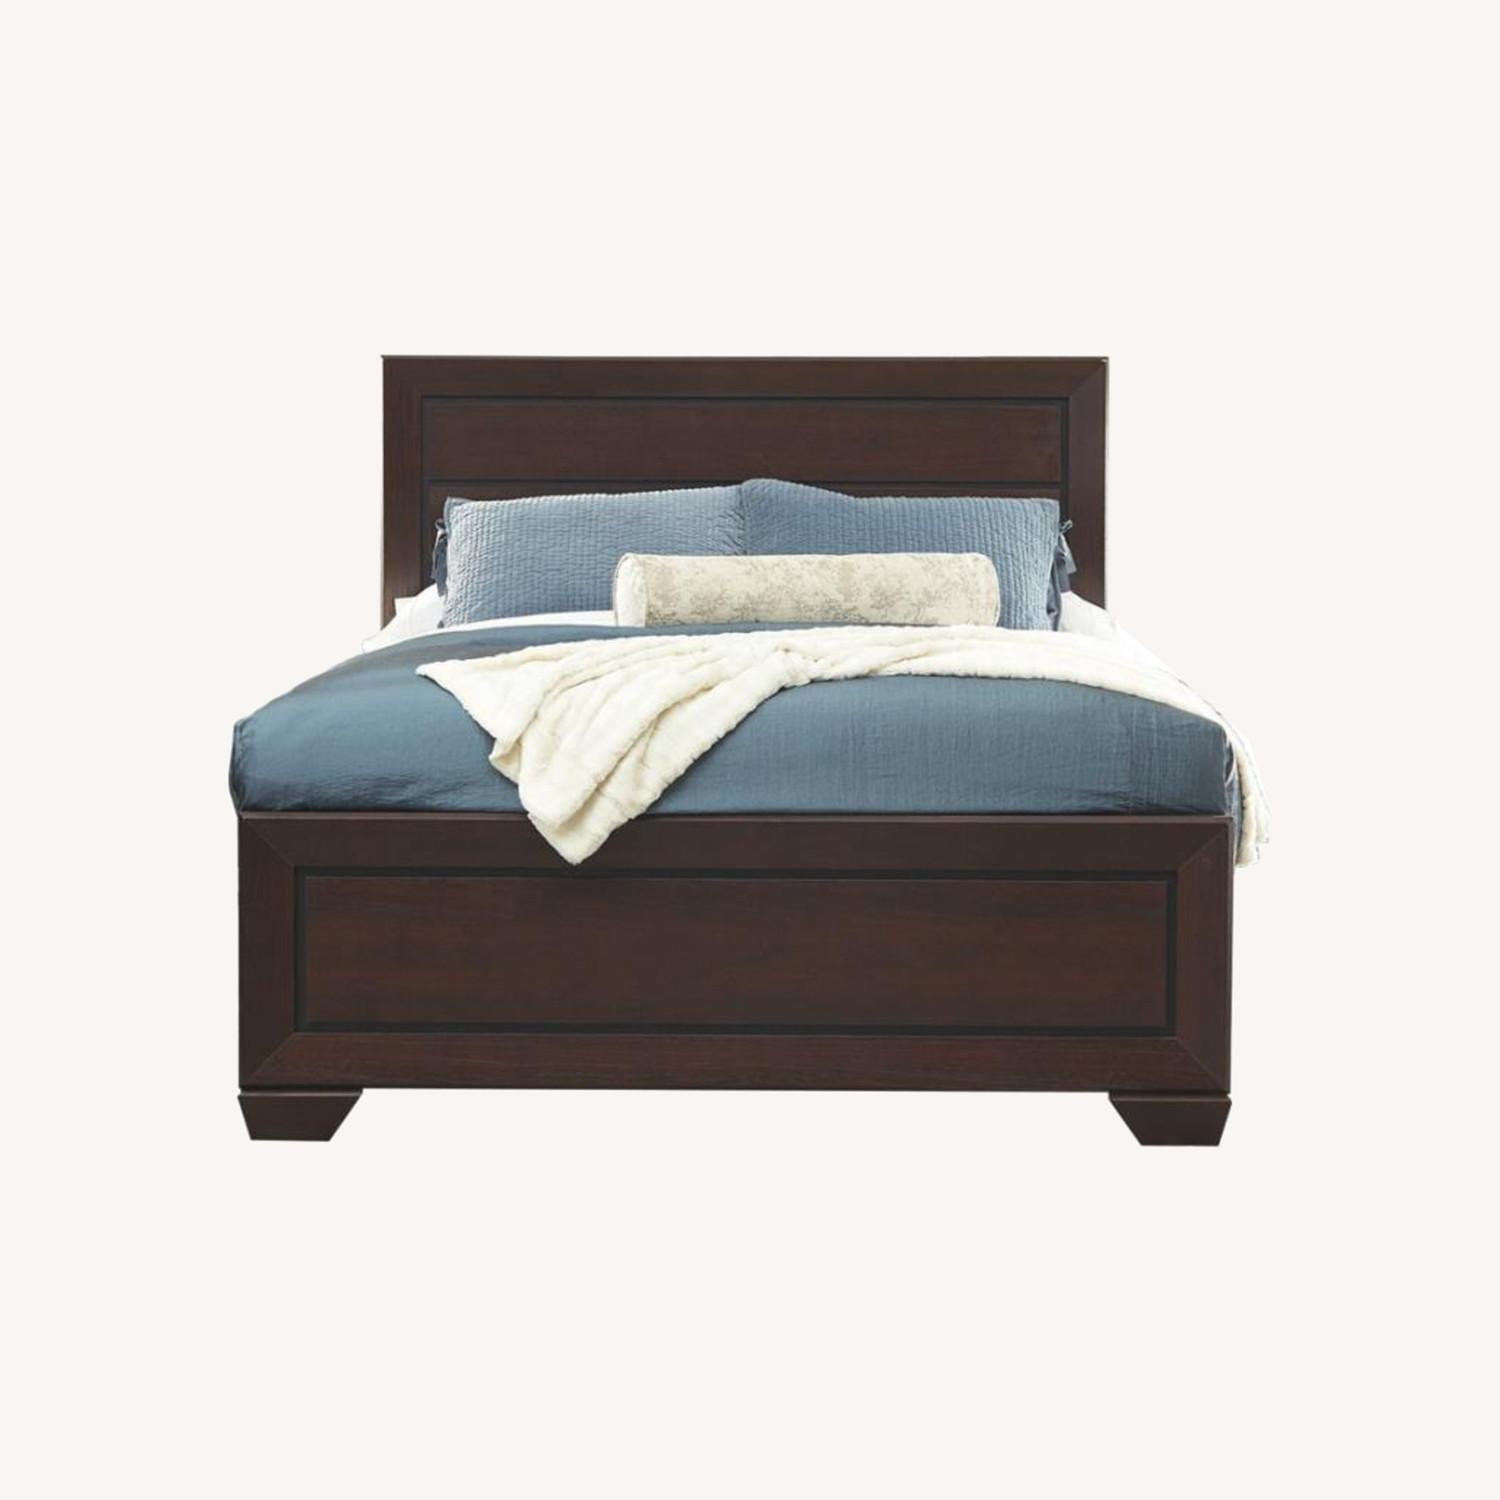 King Bed In Dark Cocoa Wood Finish - image-5